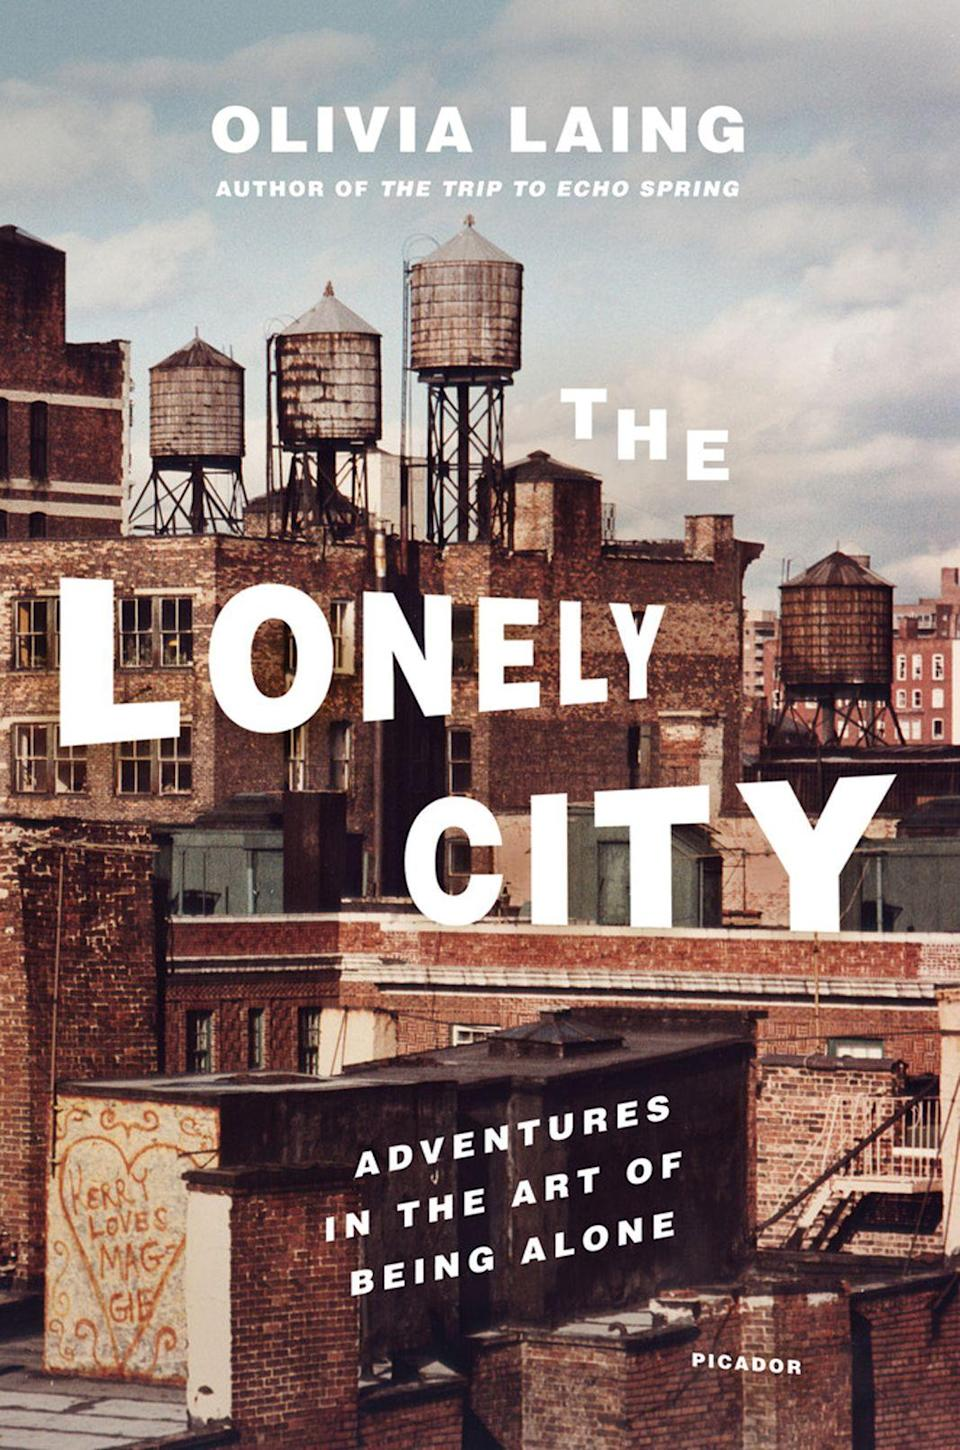 <p><strong><em>The Lonely City</em></strong></p><p>By Olivia Laing</p><p>As increasing numbers of us opt for solo living, it's worth thinking about what loneliness means, both for us as individuals and as a society. That's where Olivia Laing's <em>The Lonely City</em> comes in. When she moved to New York in her mid-30s, Laing found herself lonely and ashamed. But instead of letting it get the better of her, she channelled it into this remarkable work of memoir, biography and cultural criticism. A must-read for everyone, not just the loners among us.</p>